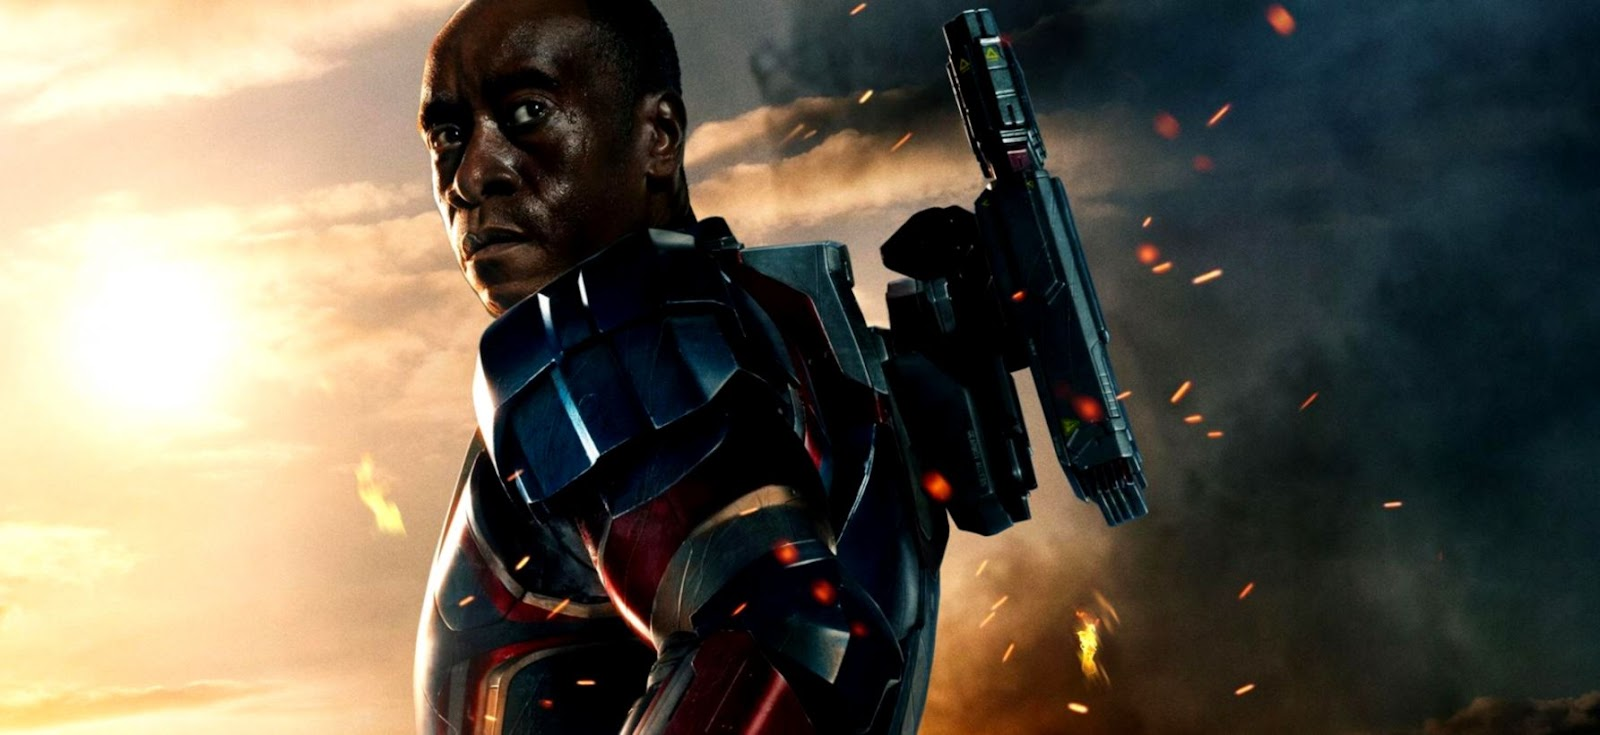 Iron Man 3 James Rhodes As Iron Patriot Hd Wallpaper Wallpapers